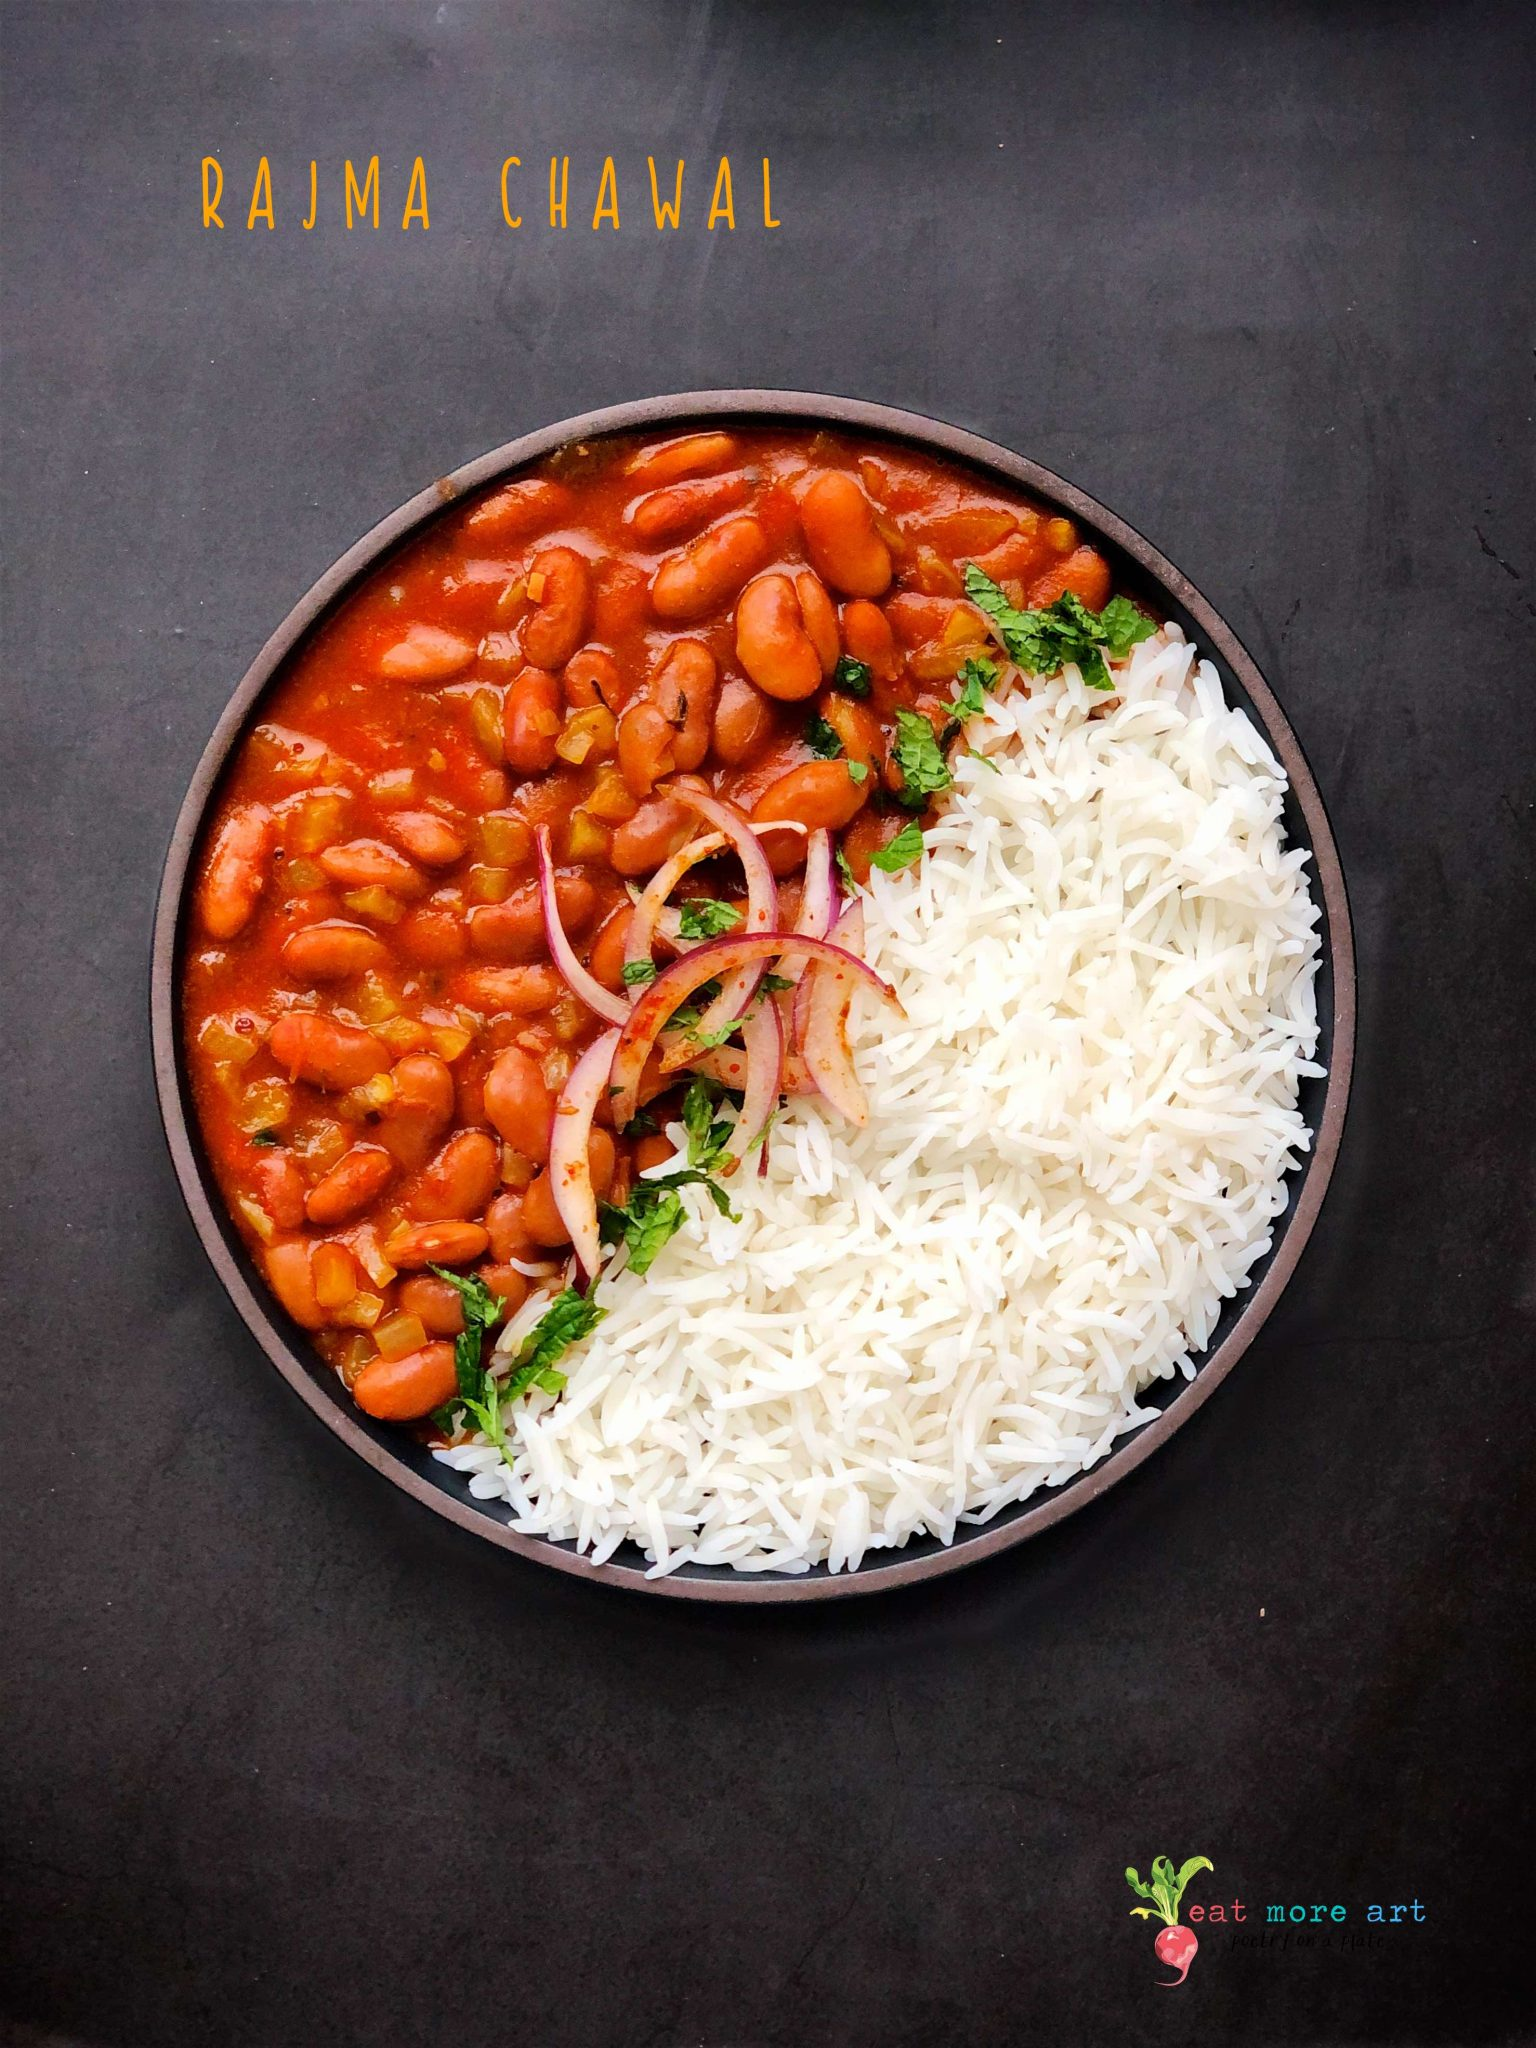 Rajma Chawal Curried Kidney Beans Rice Eat More Art